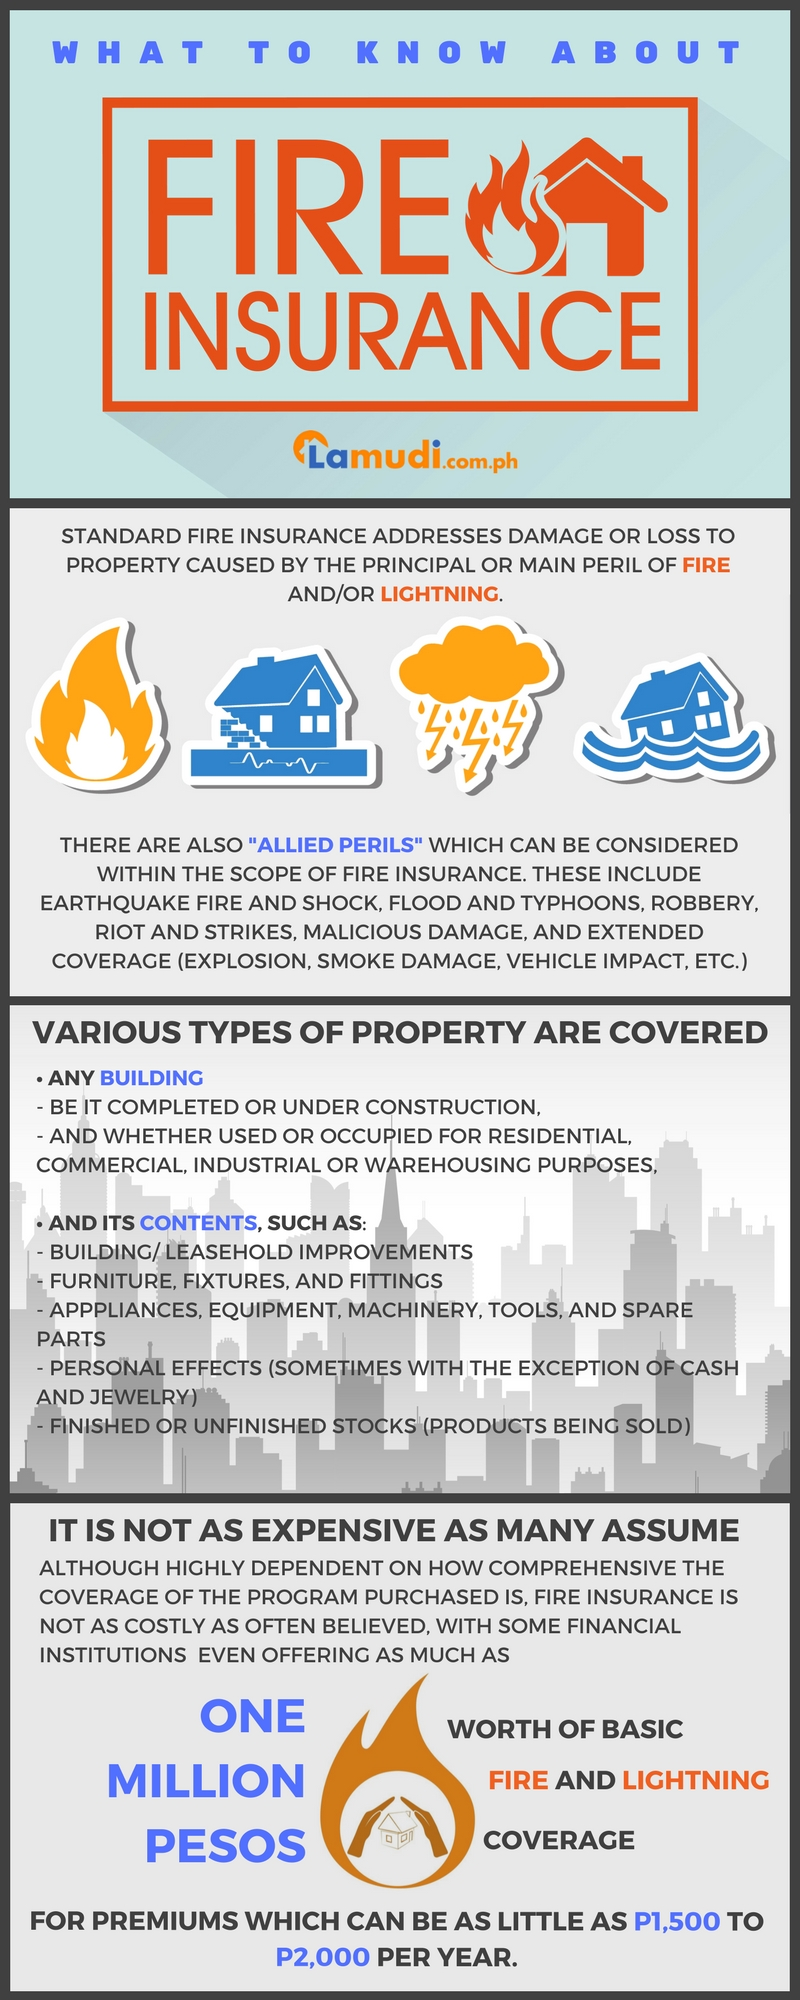 Burning Concern: The Basics of Fire Insurance